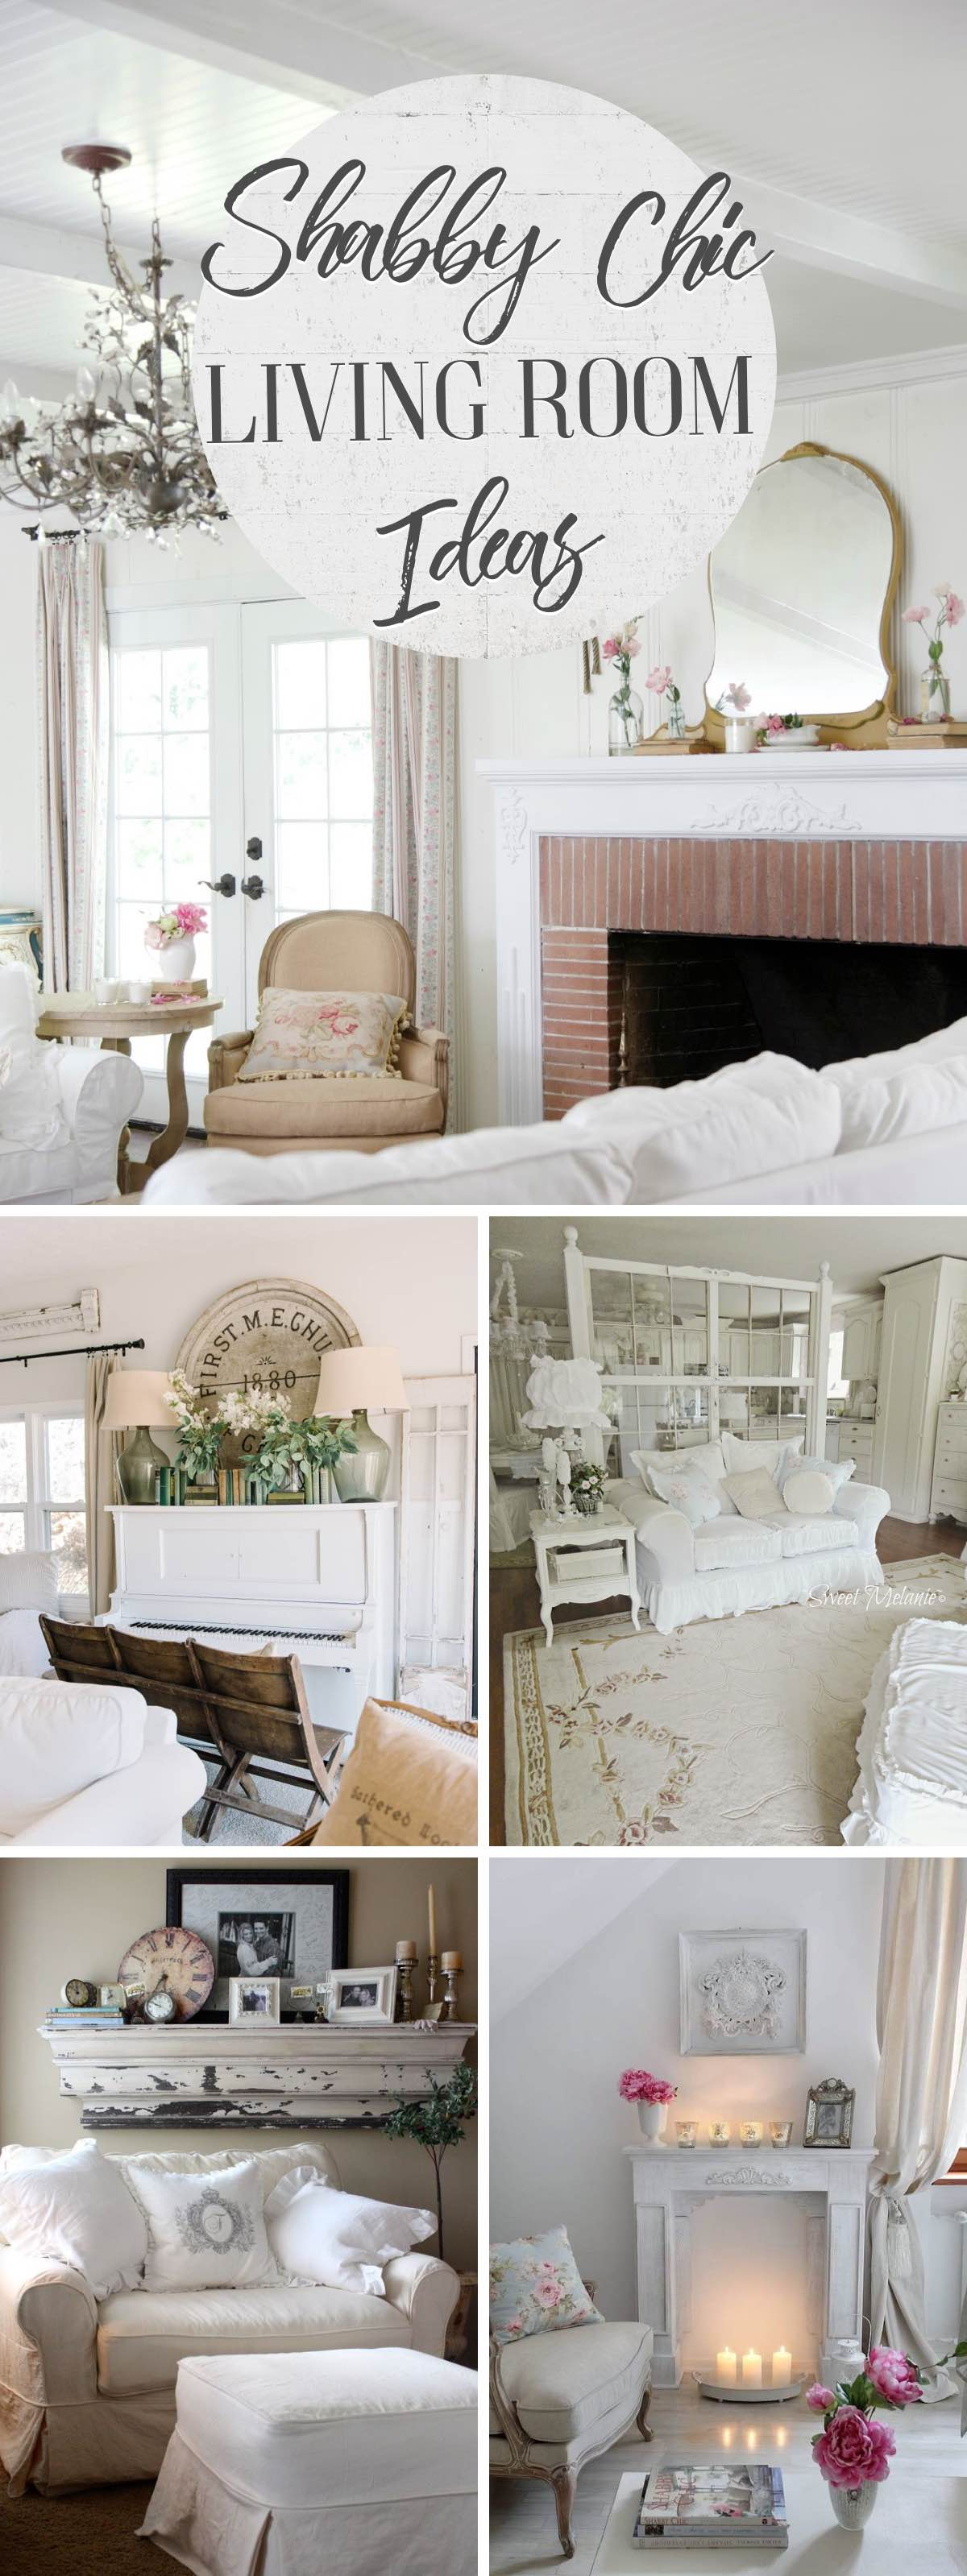 19 Shabby Chic Living Room Ideas That Will Totally Melt Your Heart!